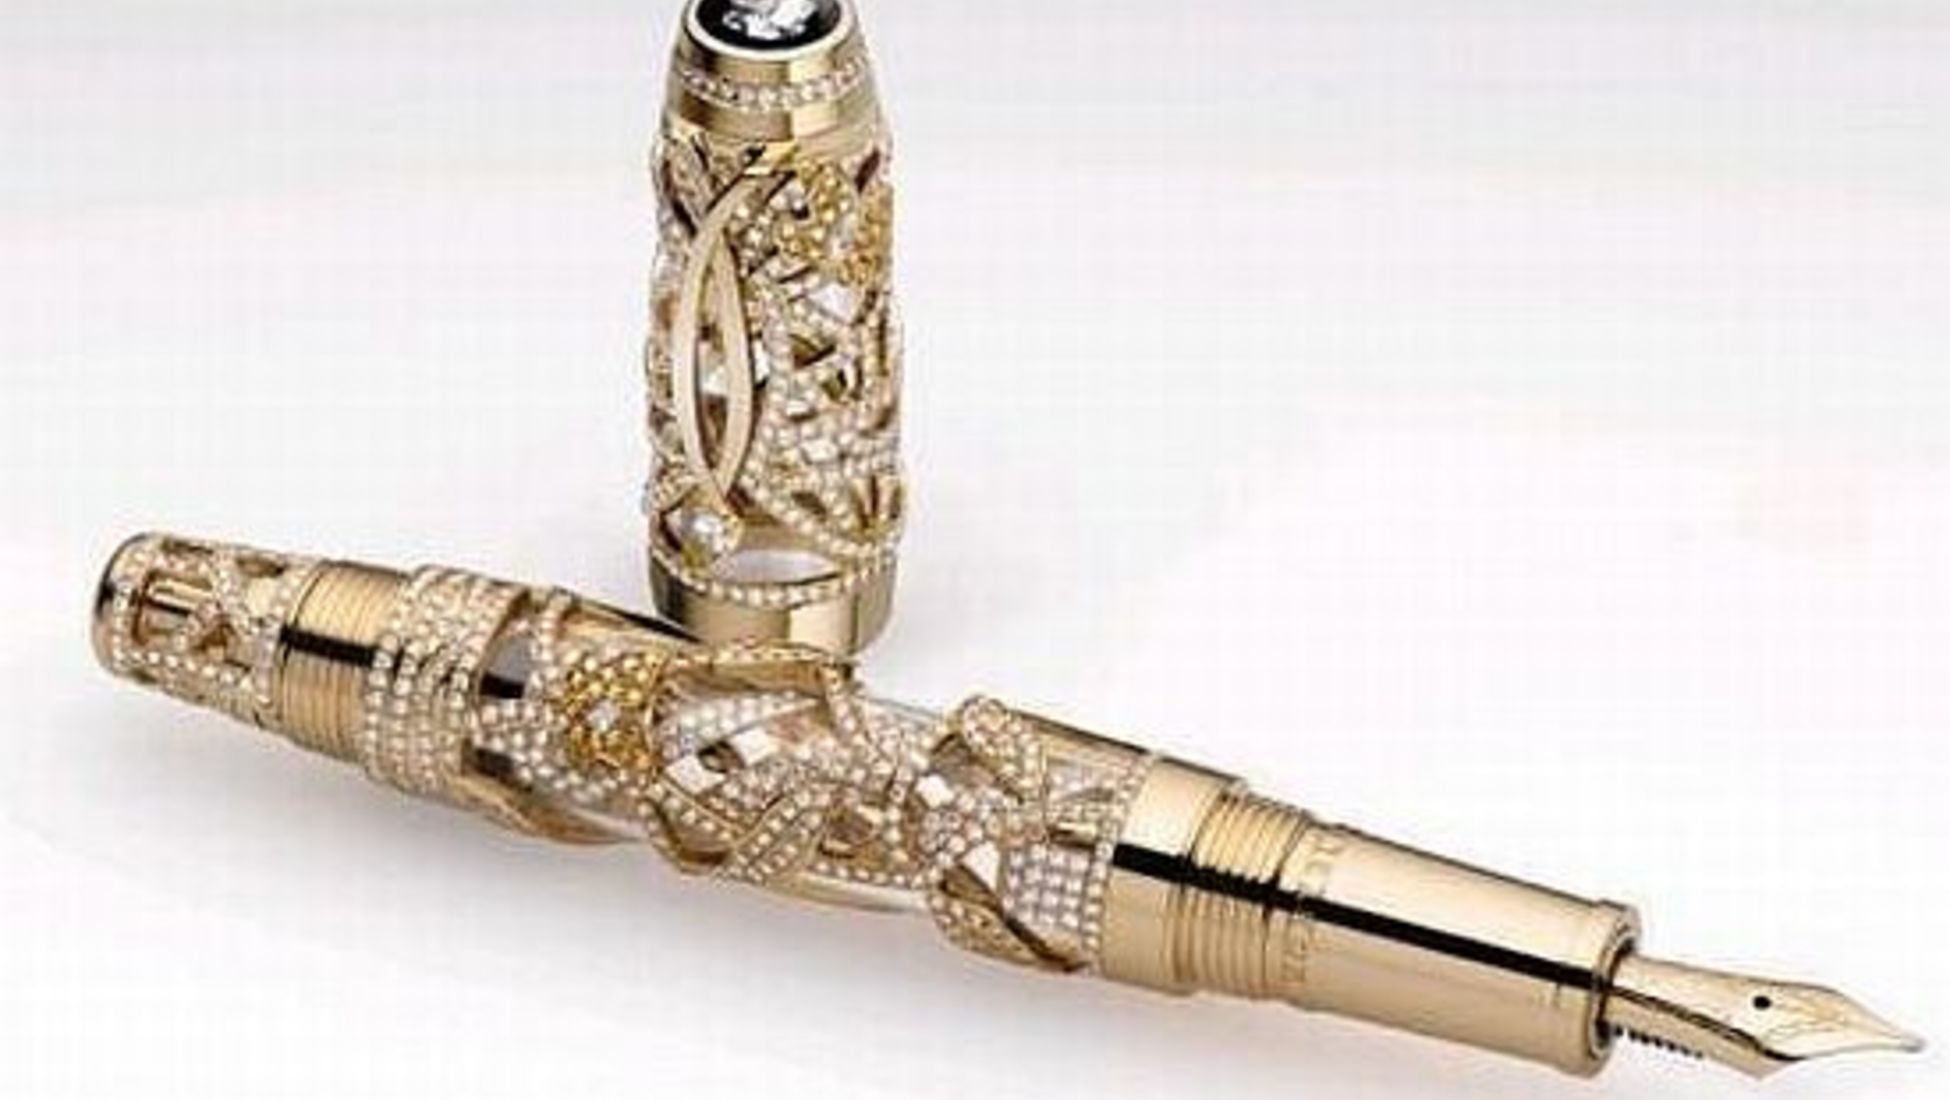 The Most Expensive Pen in the World 69